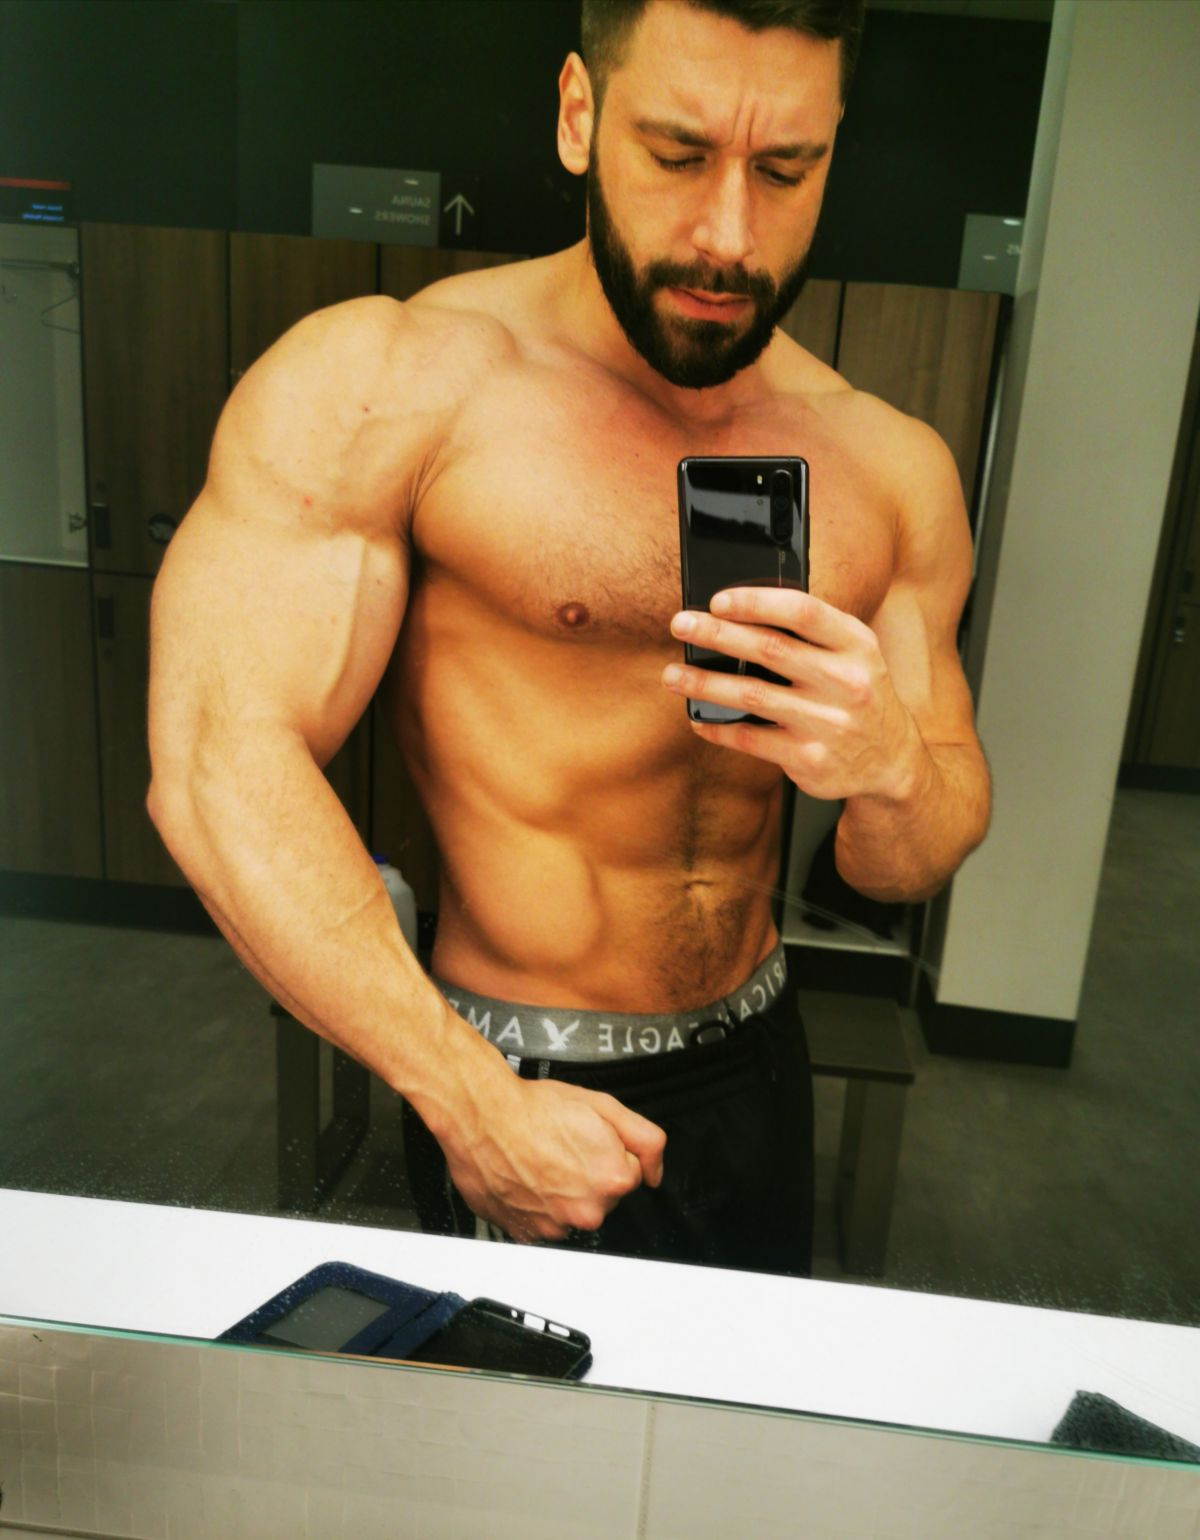 Pizza biceps onlyfans leaked onlyfans leaked